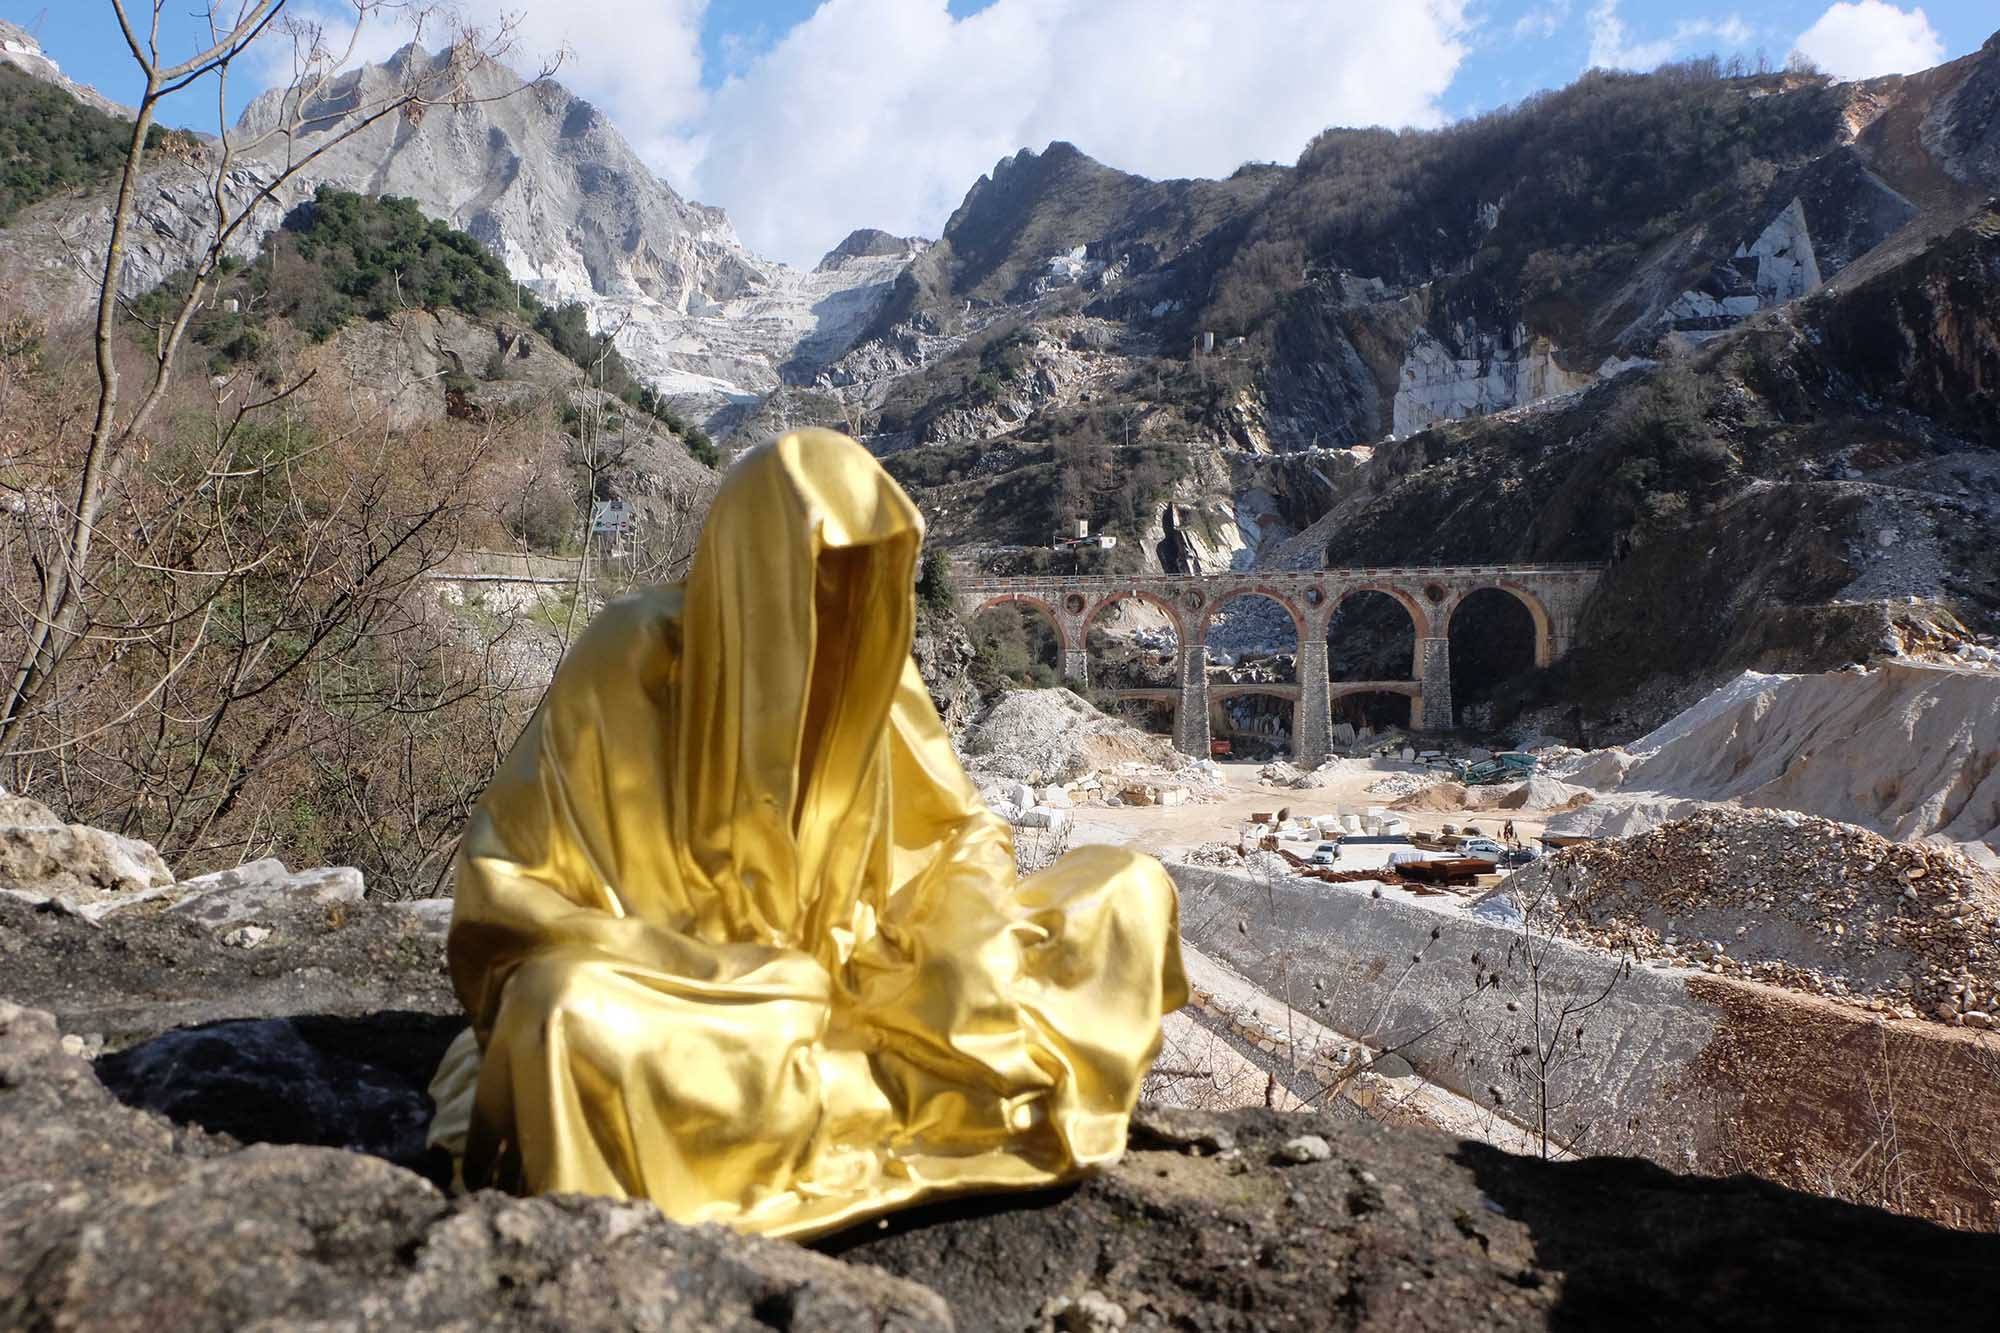 guardians of time manfred kili kielnhofer modern sculpture contemporary fine art design arts statue faceless religion stone marble carrara 0659